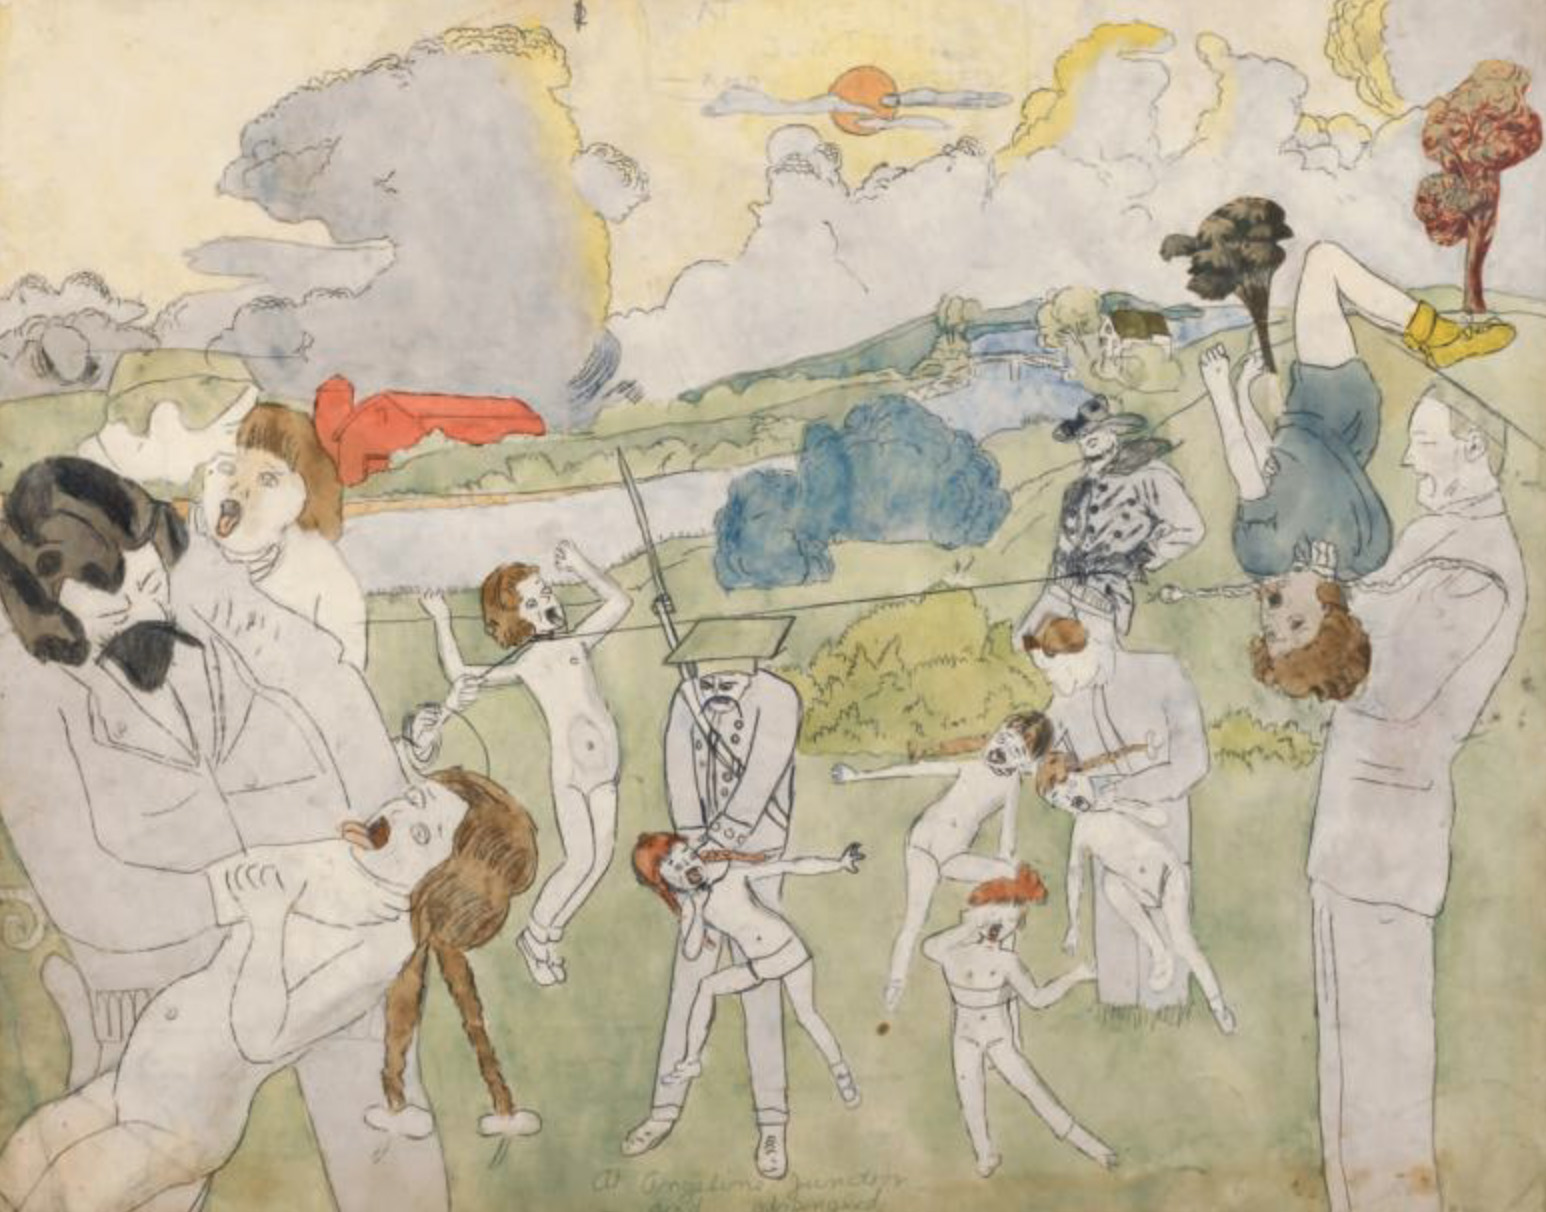 €154,900Henry Darger (1892-1973), At Angeline Junction and Strangled, gouache, watercolor, carbon, pencil and collage on paper, 48.3 x 61